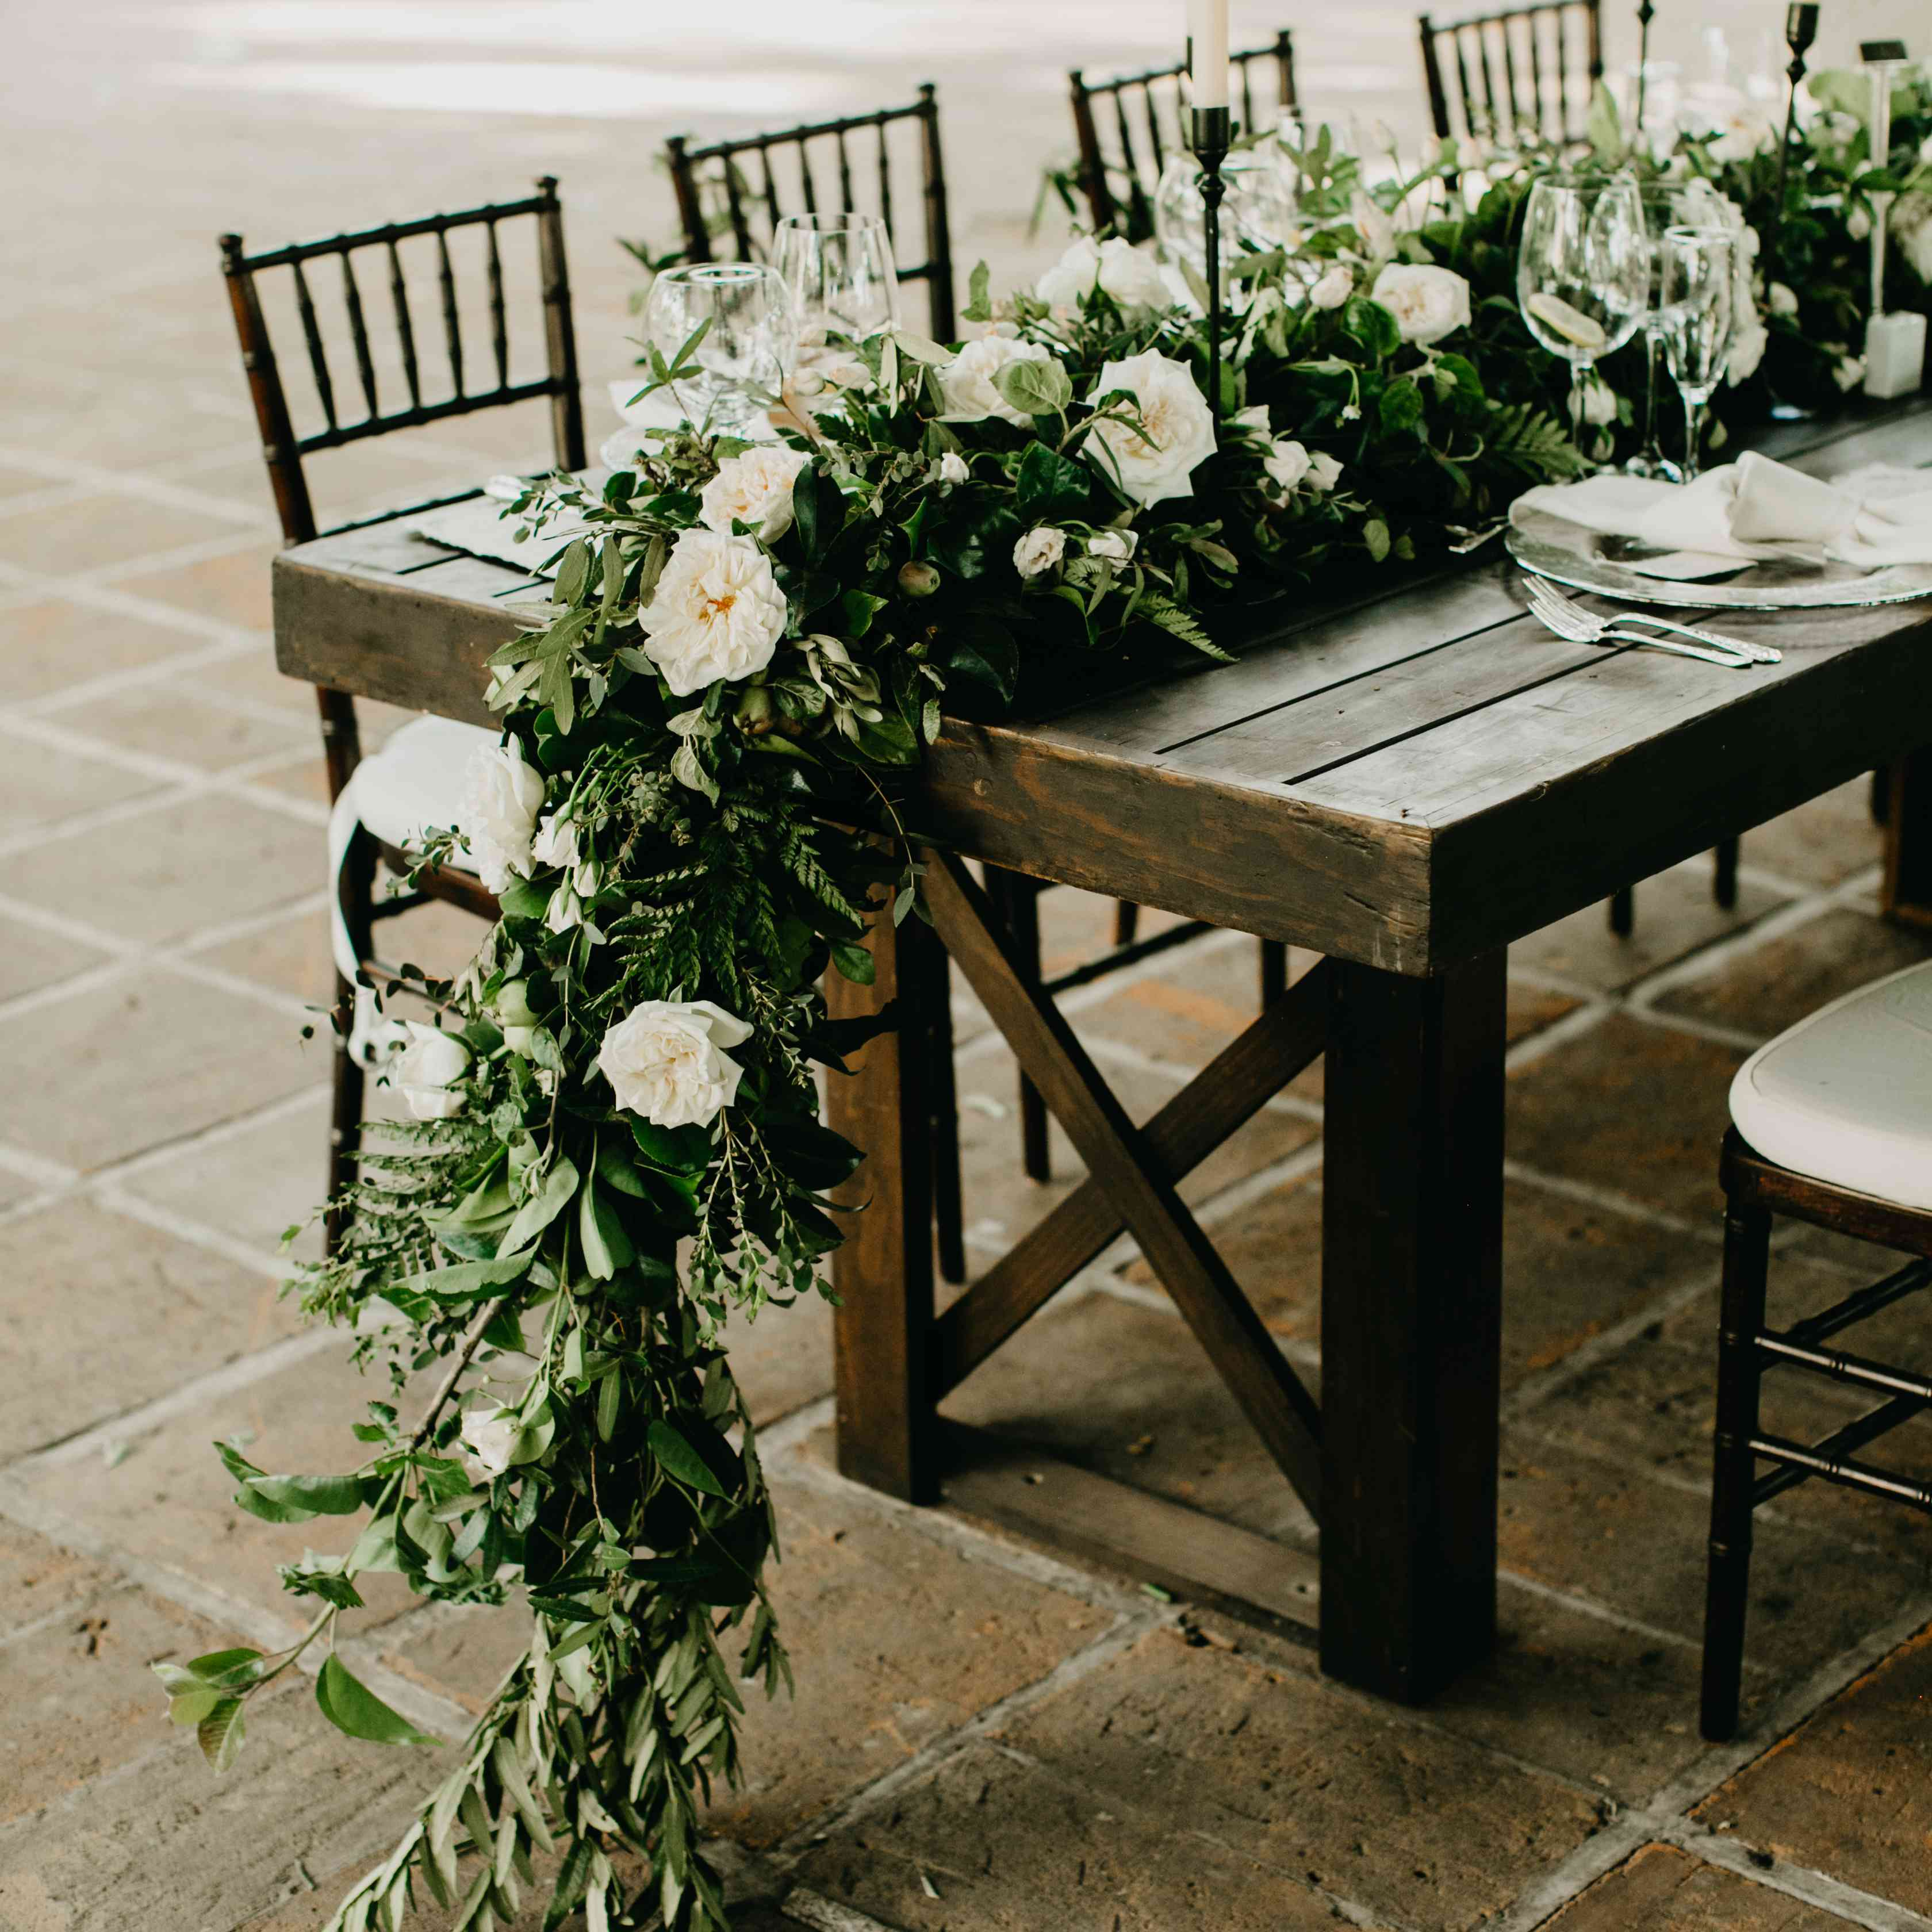 Green and white floral runner on rustic table